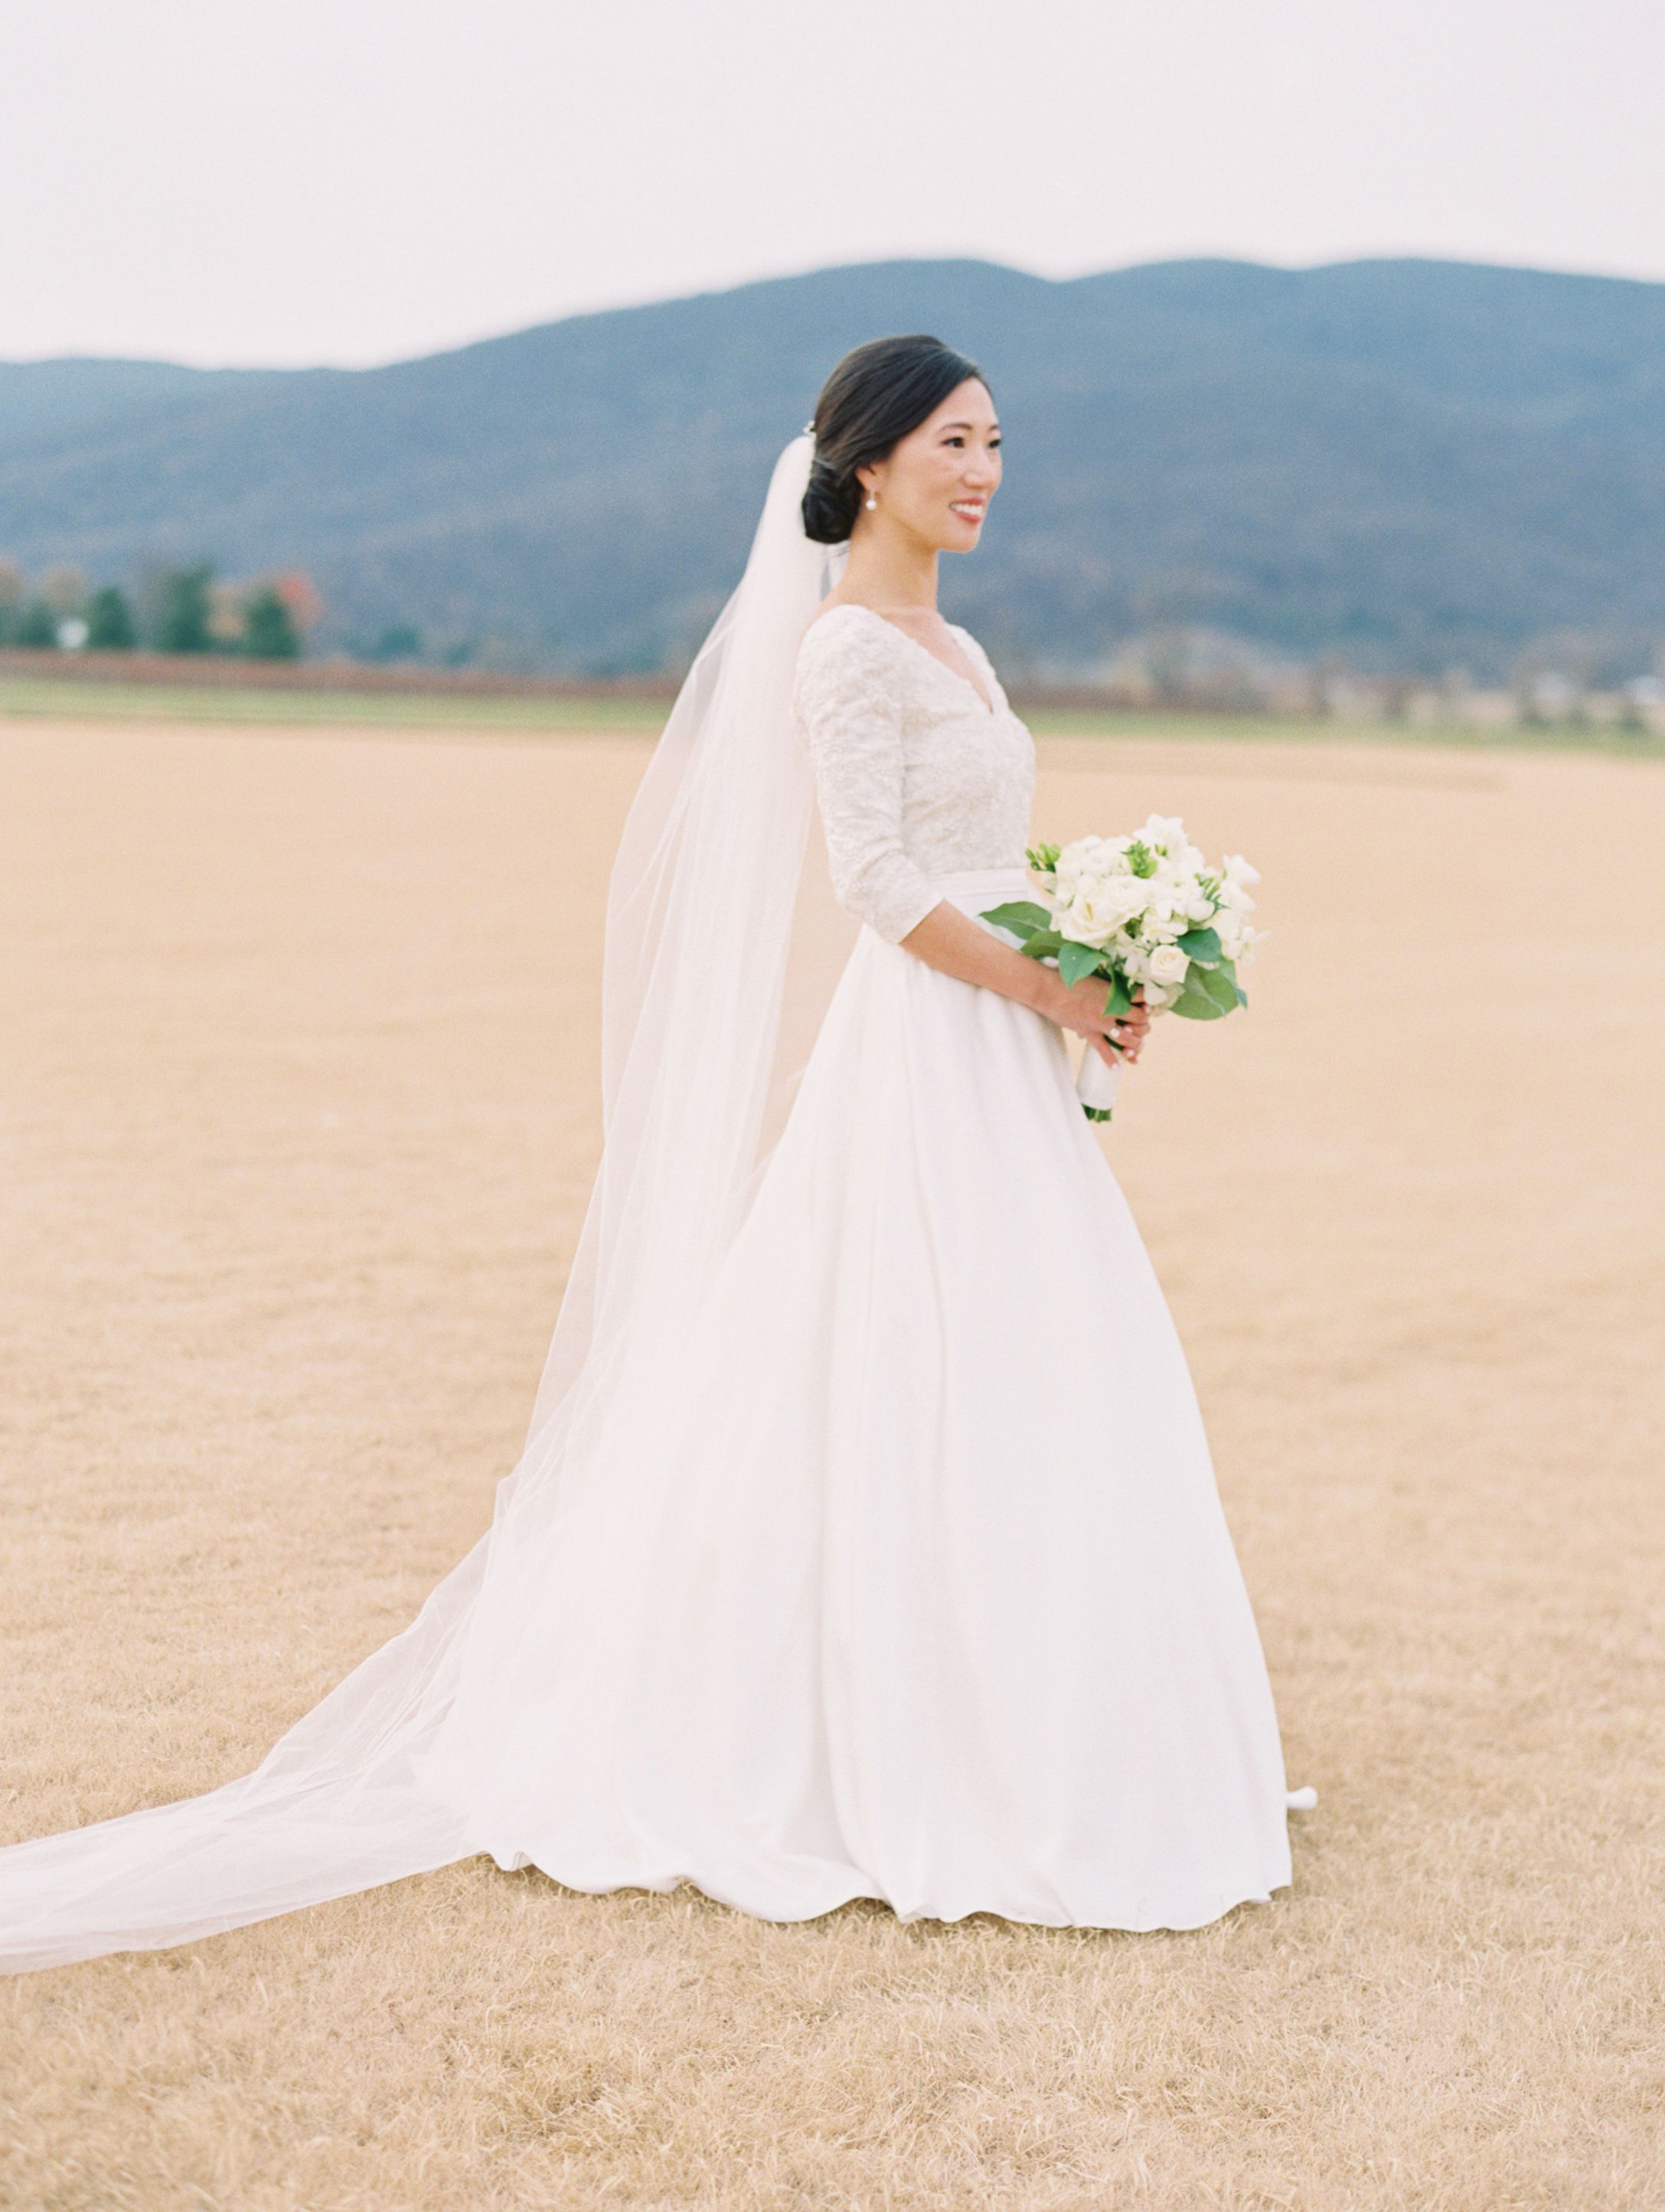 A Cozy Winter Wedding in the Blue Ridge Mountains (With